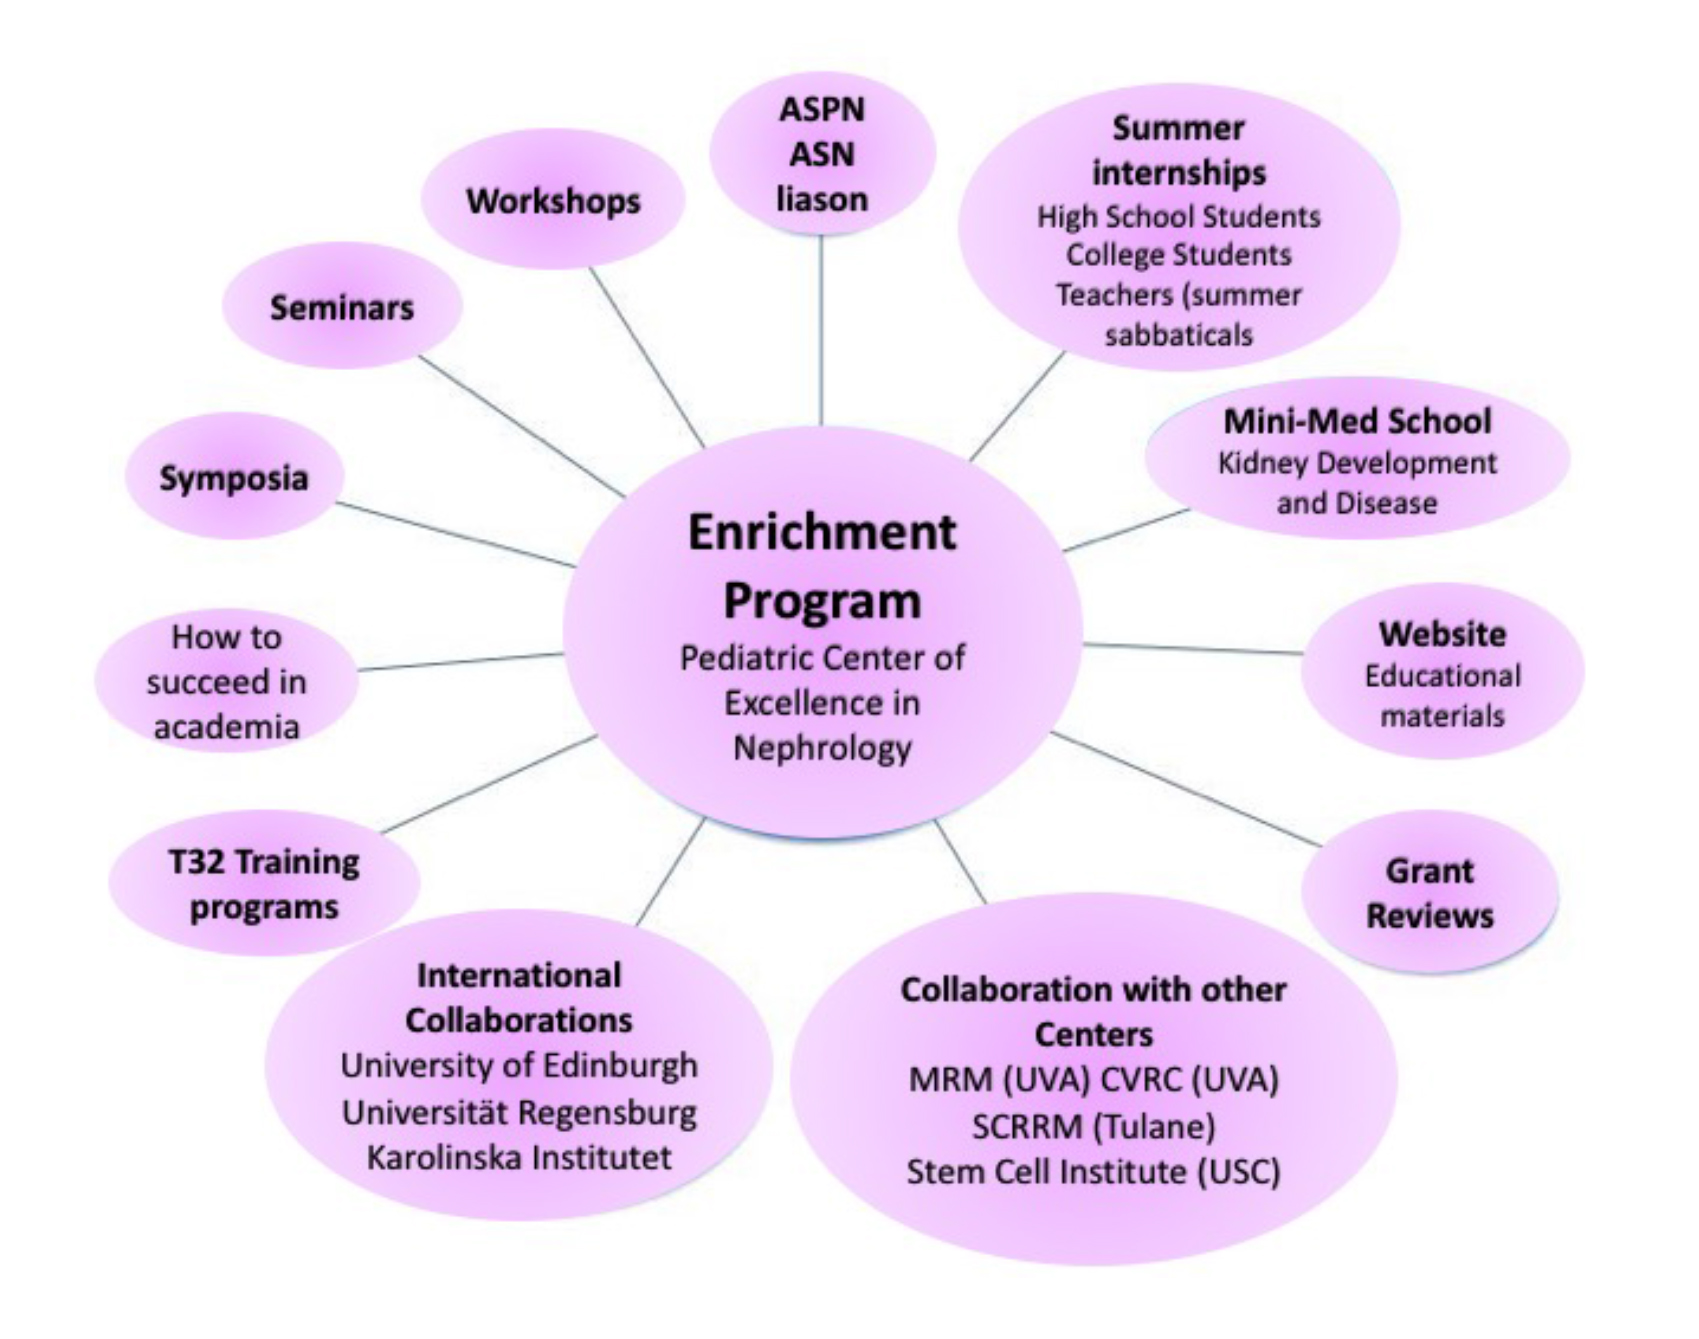 Microsoft Word - Enrichment Specific AIms FINAL.docx